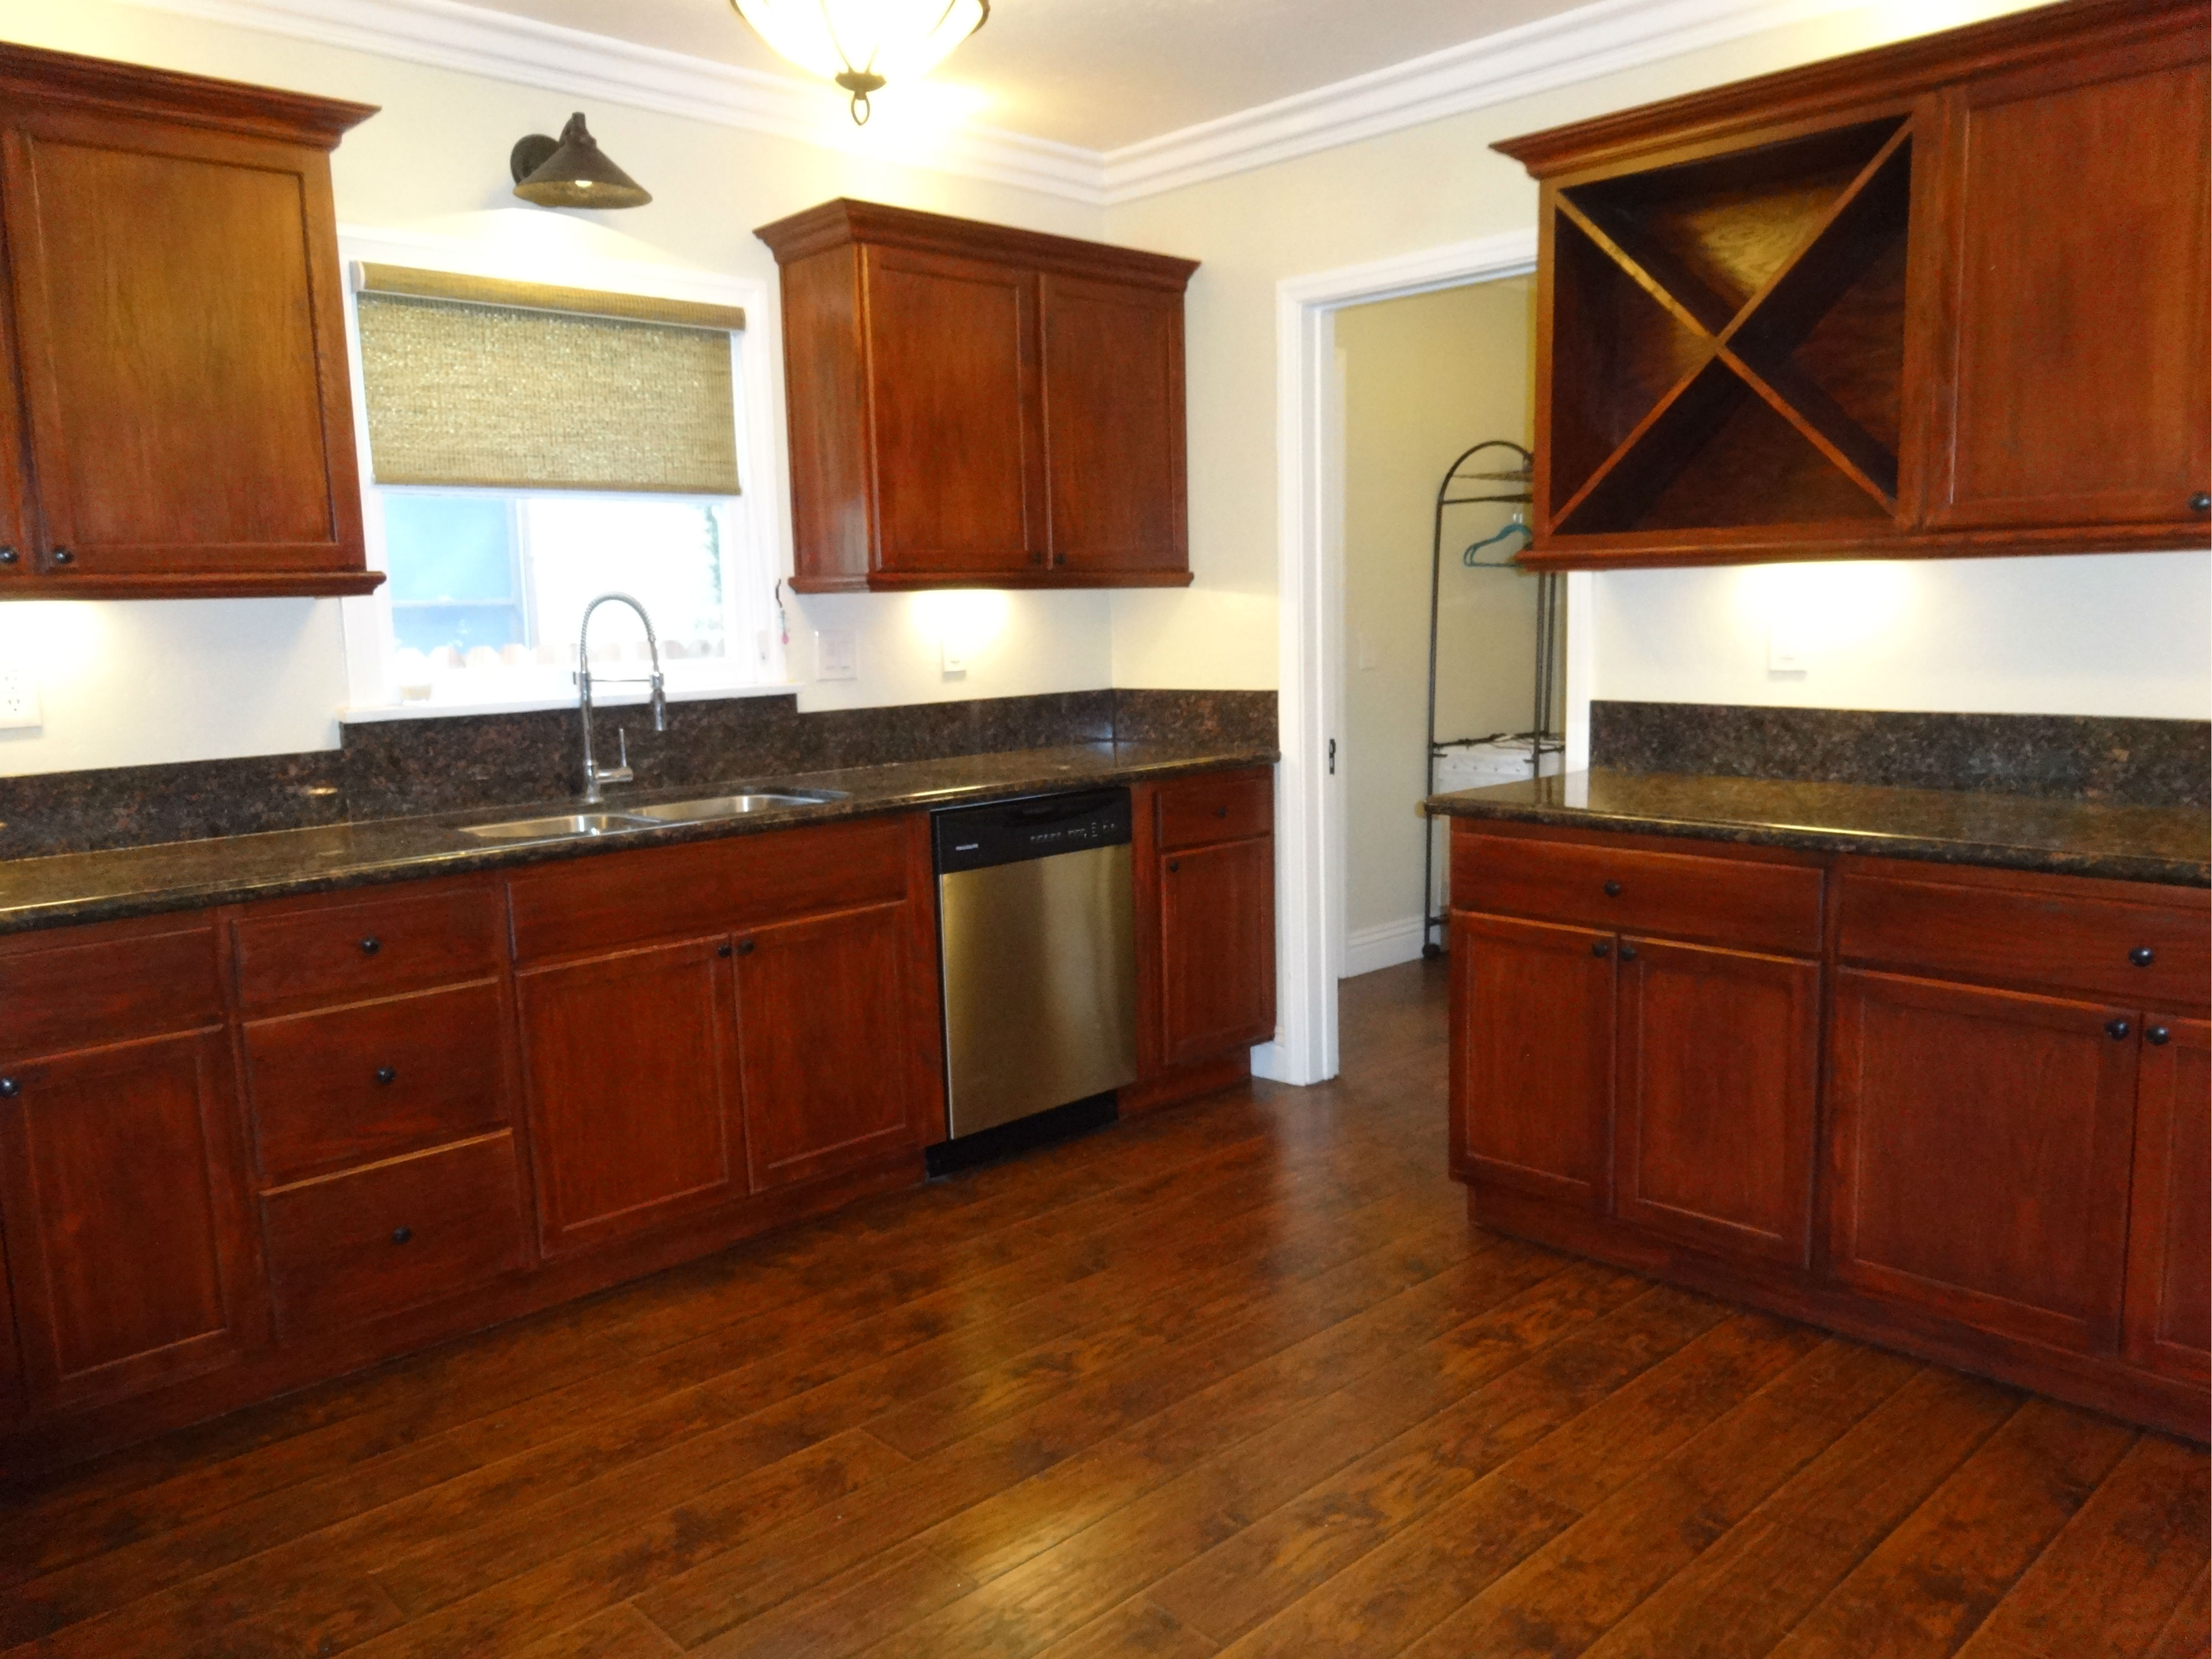 Best Remodeled kitchen with cherry stained cabinetry stainless steel appliances granite counter tops and